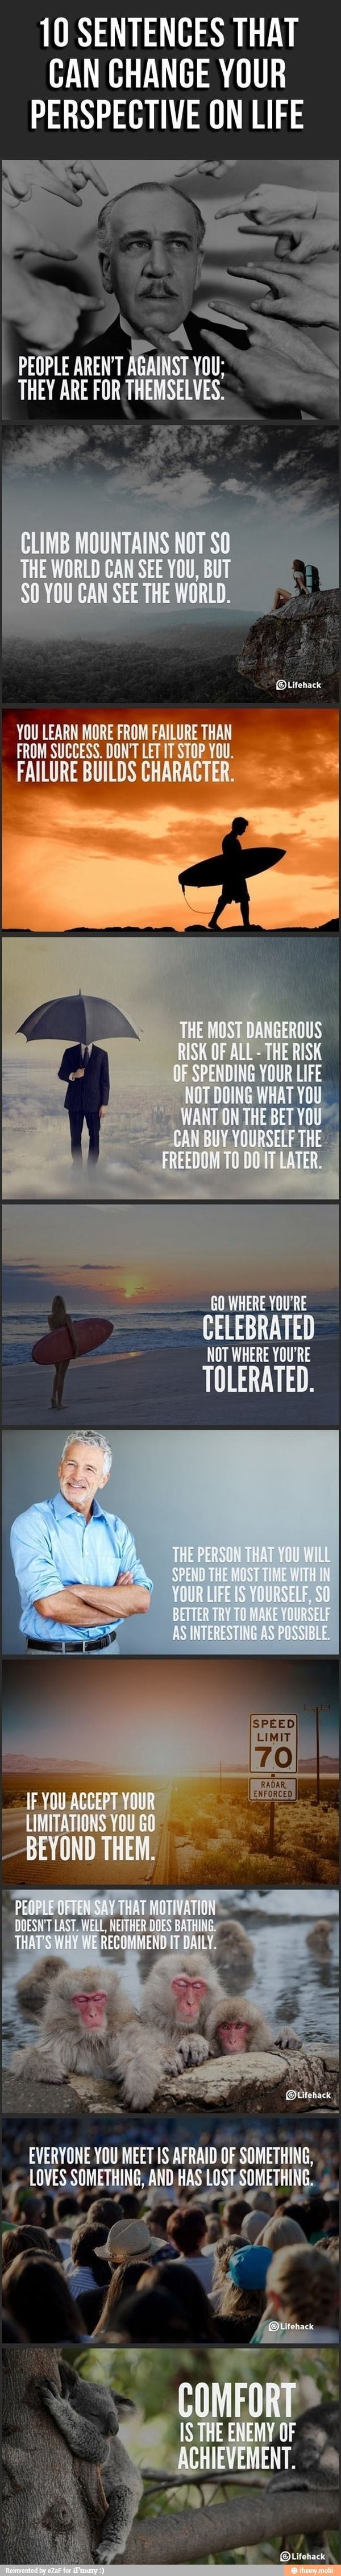 10 sentences that can change your perspective on #Life.